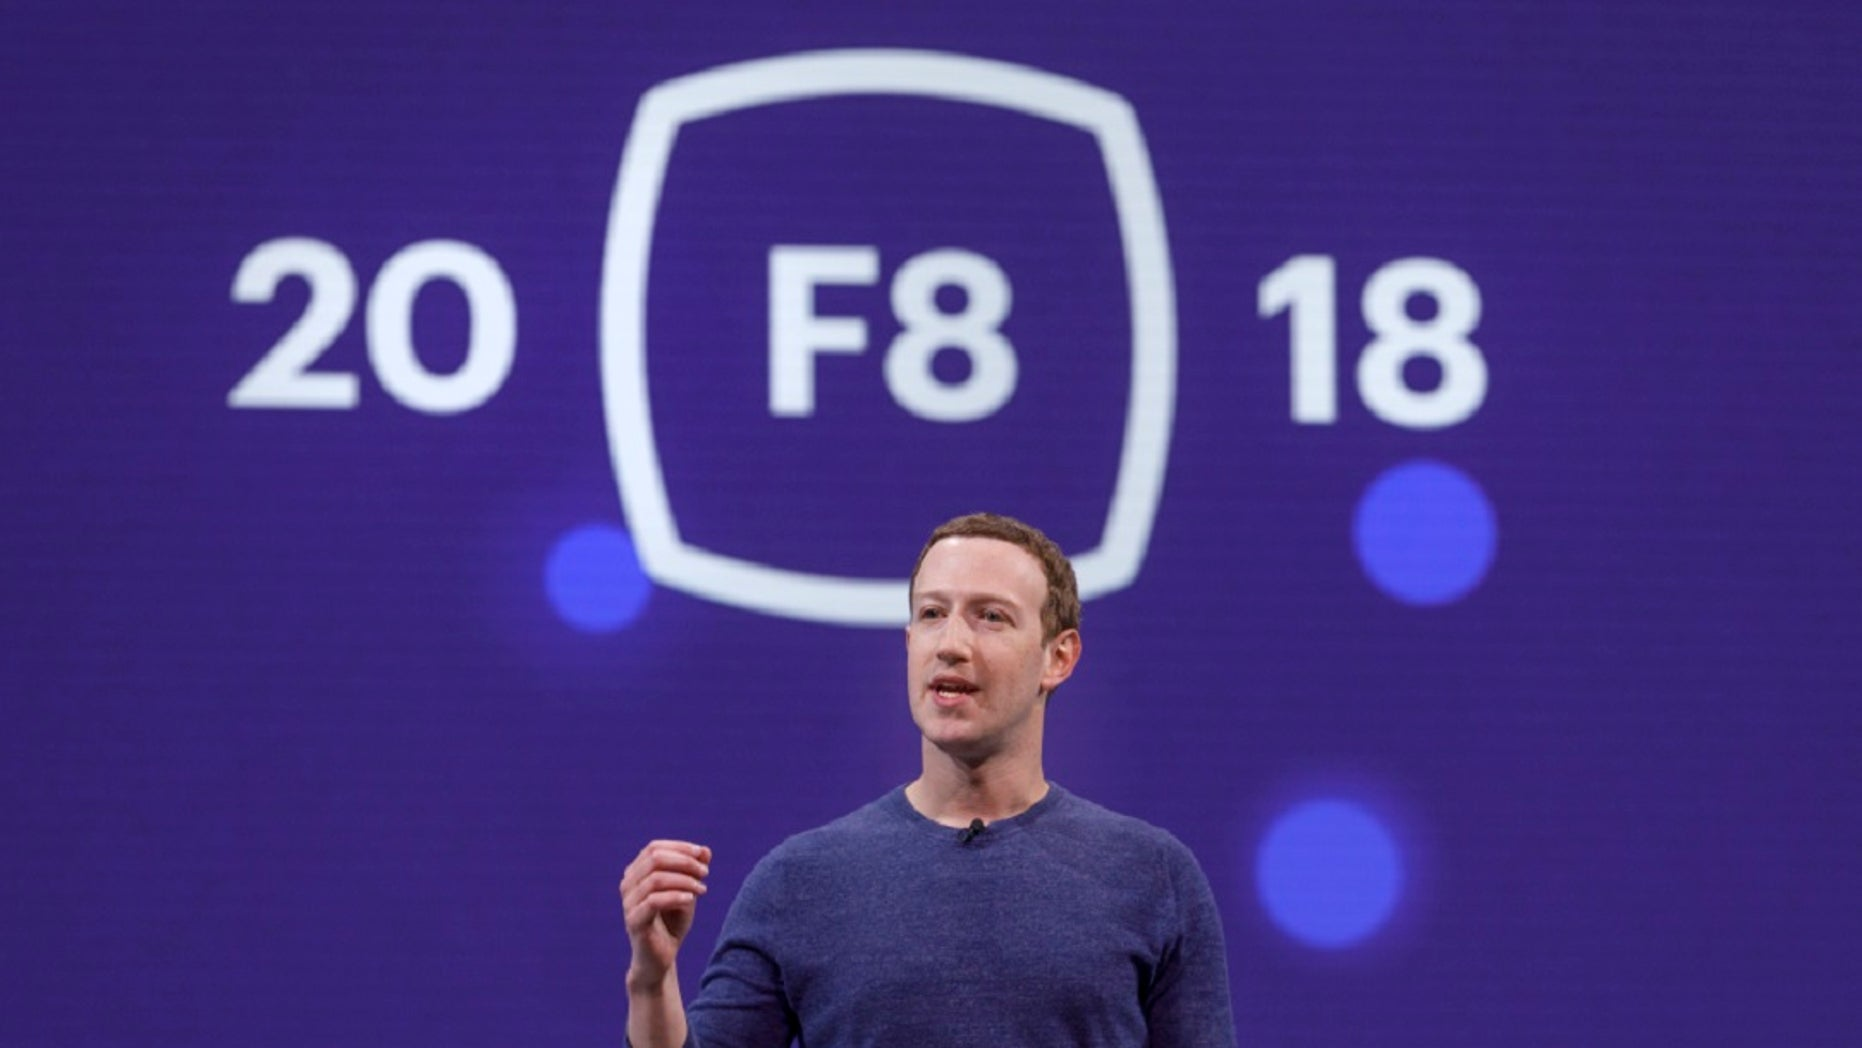 Facebook CEO Mark Zuckerberg won't address European policymakers Tuesday, according to reports.